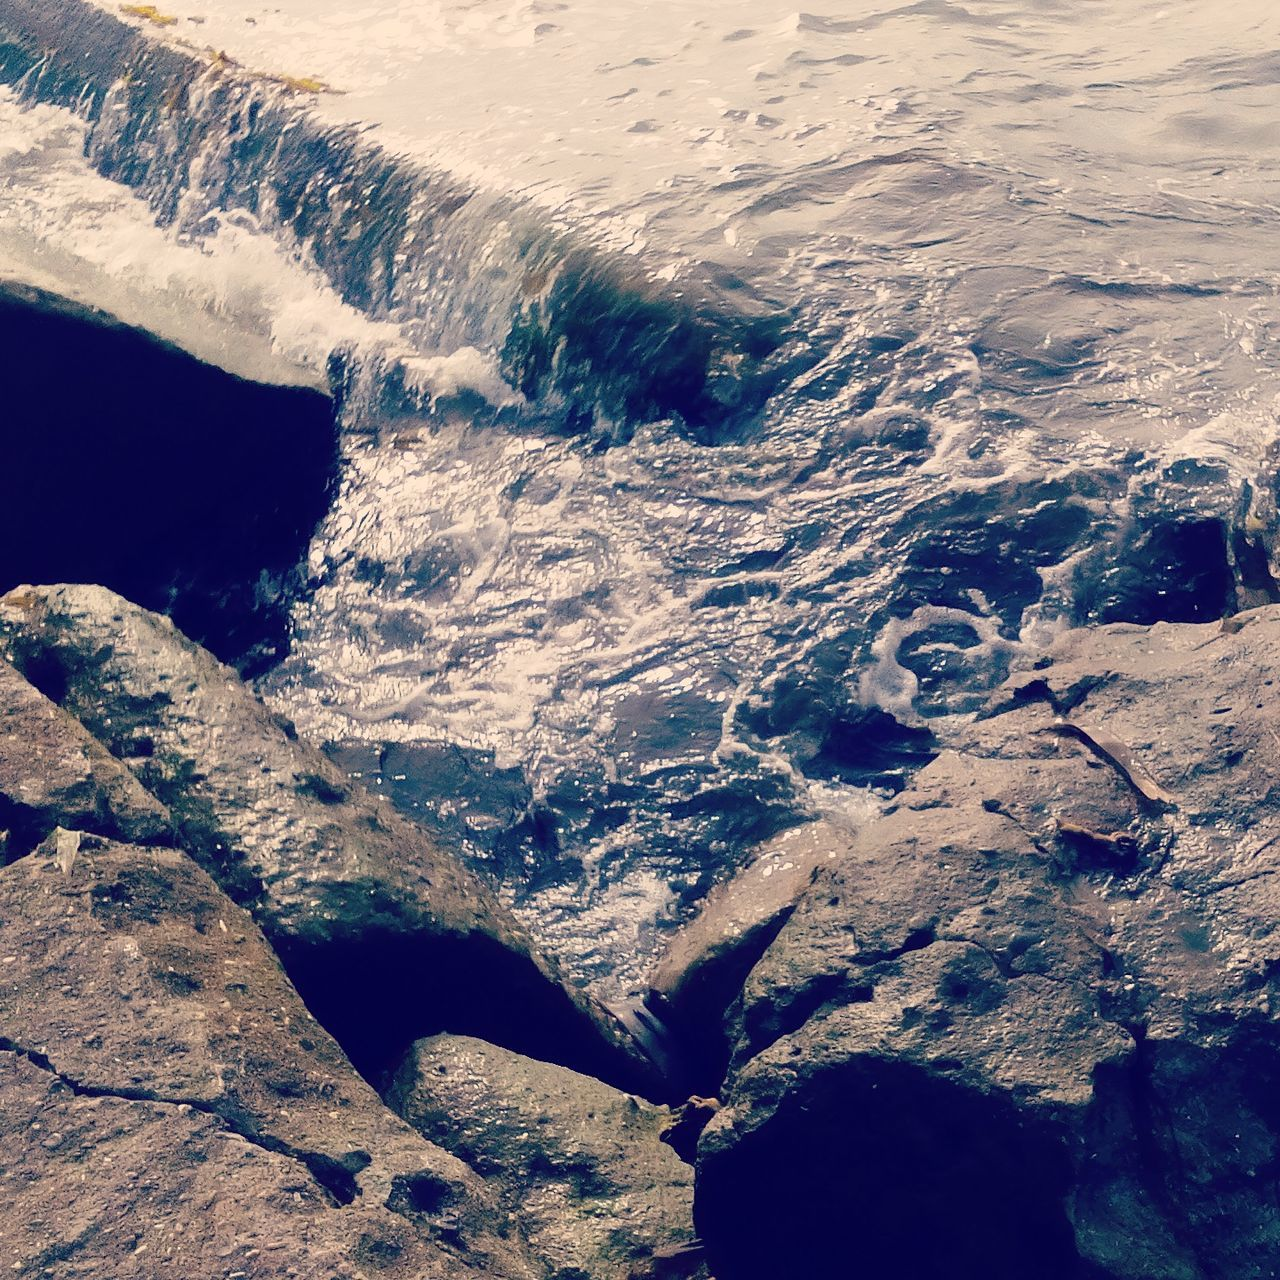 water, nature, beauty in nature, sea, day, motion, wave, outdoors, no people, close-up